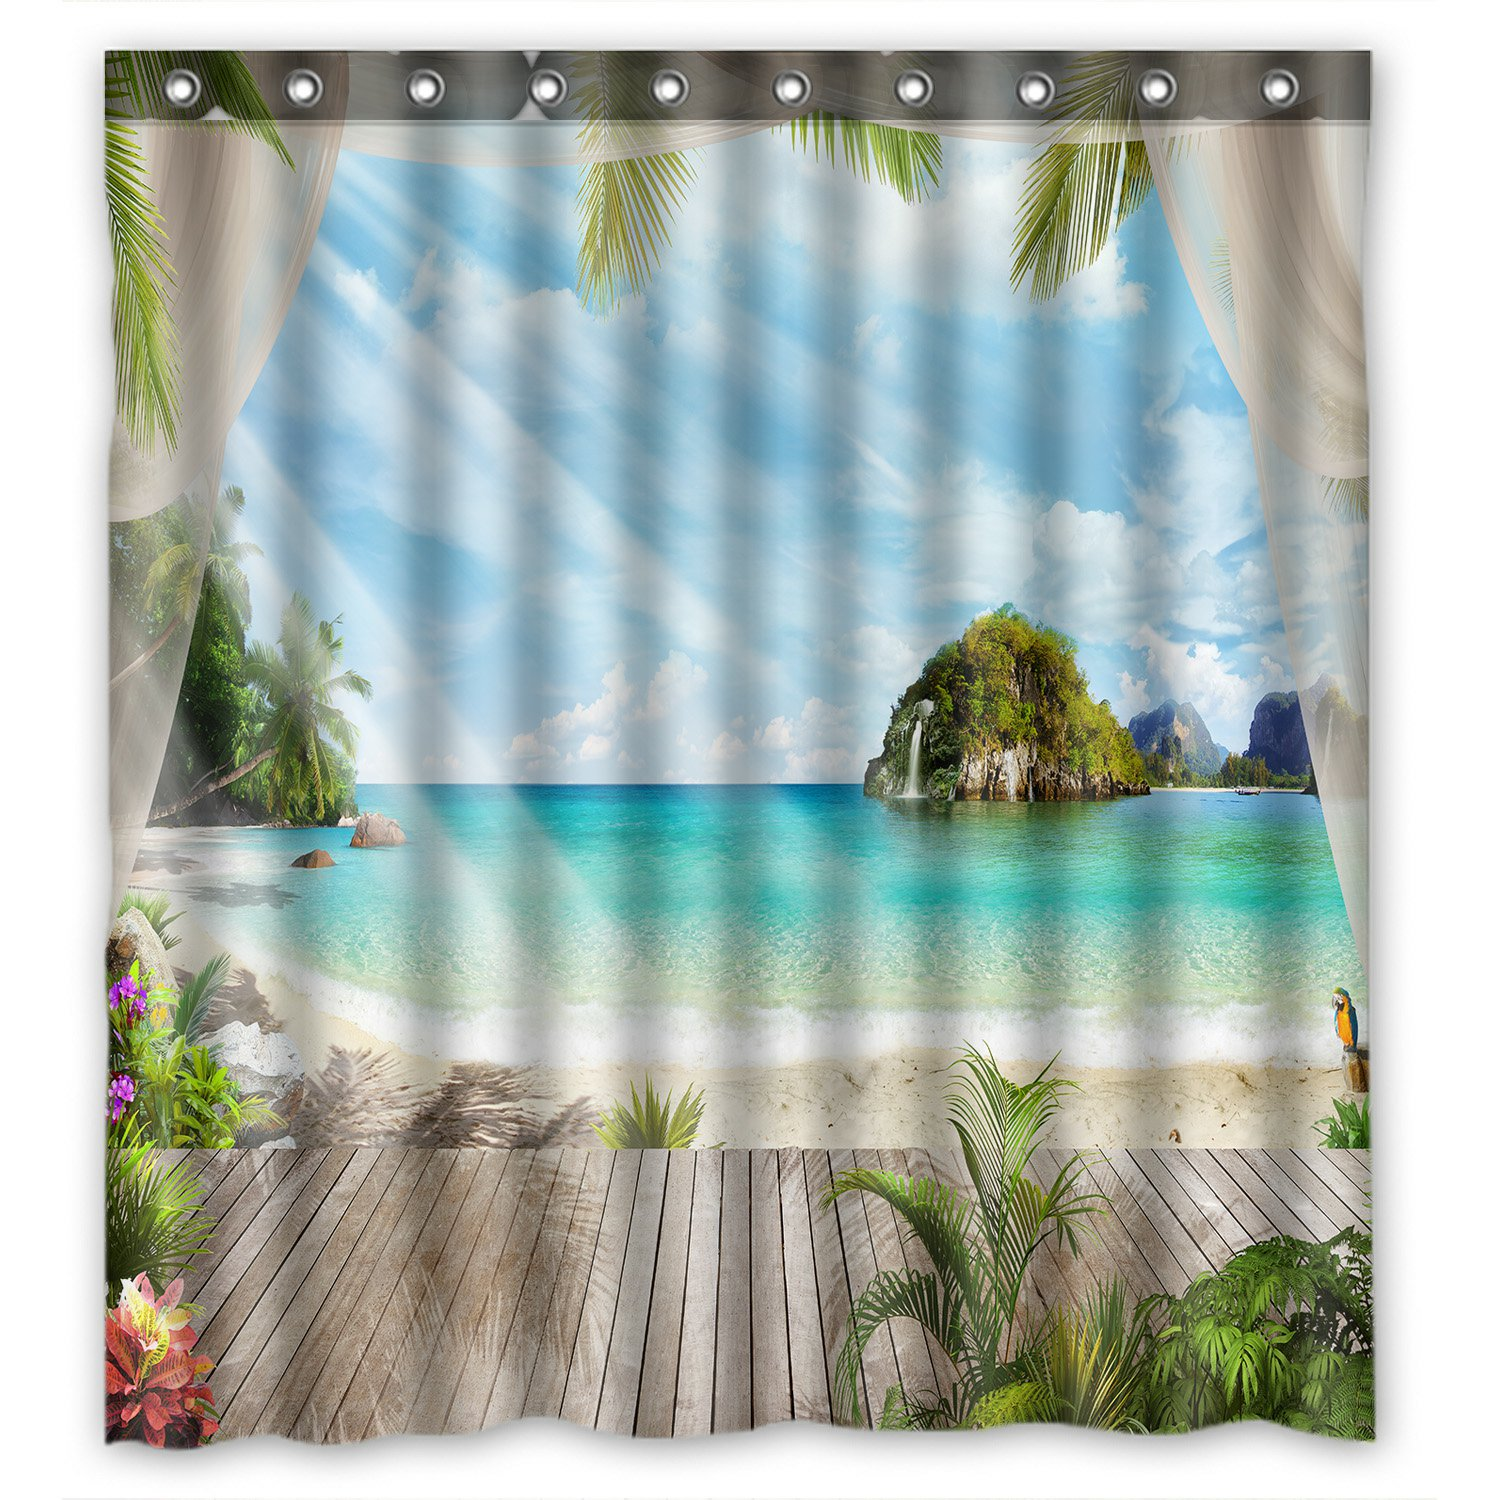 Custom Waterproof Fabric Bathroom Tropical Paradise Beach